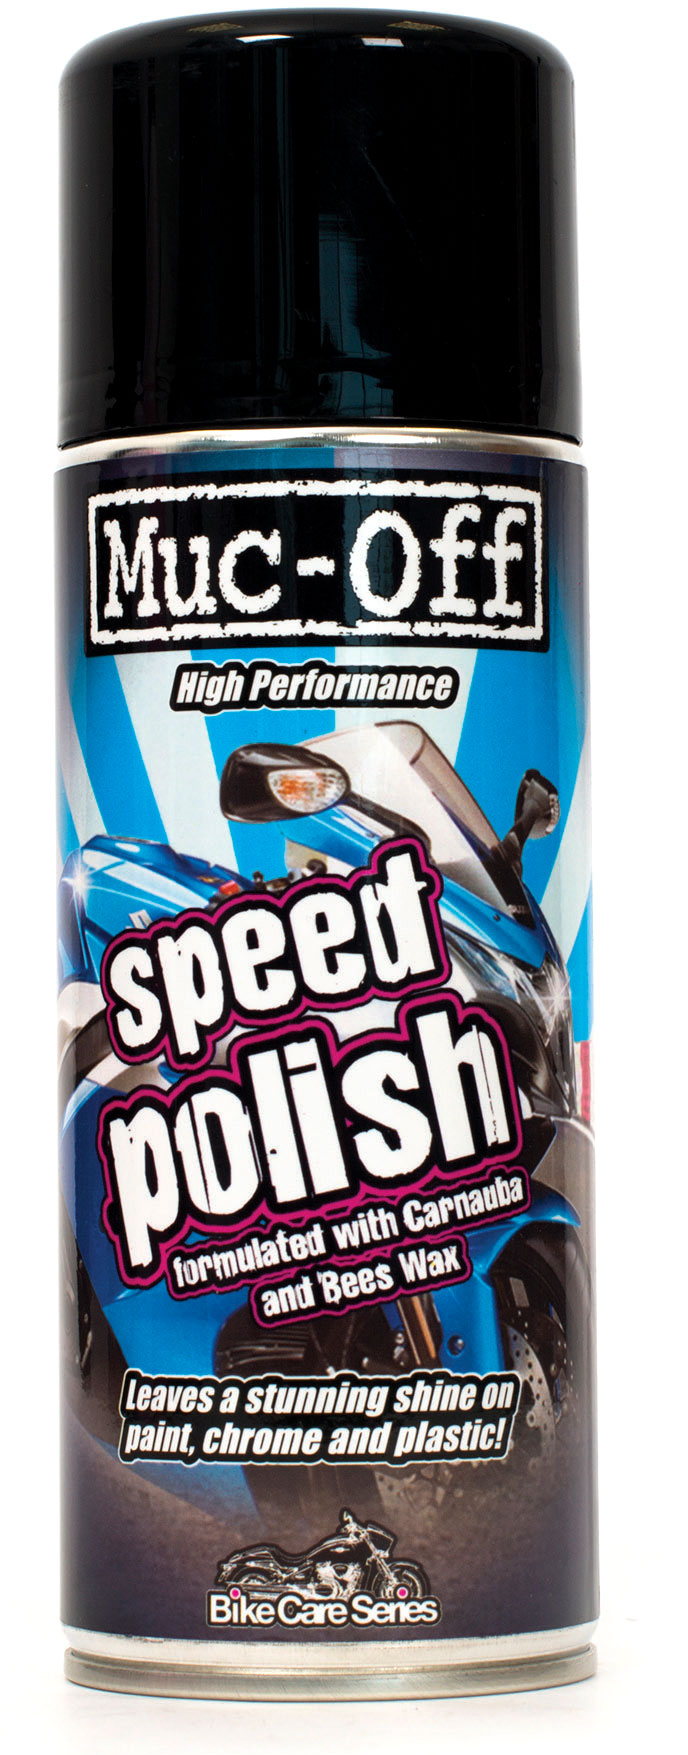 Muc-Off Speed Polish, Politur/Wax - 400 ml 210.1203.12